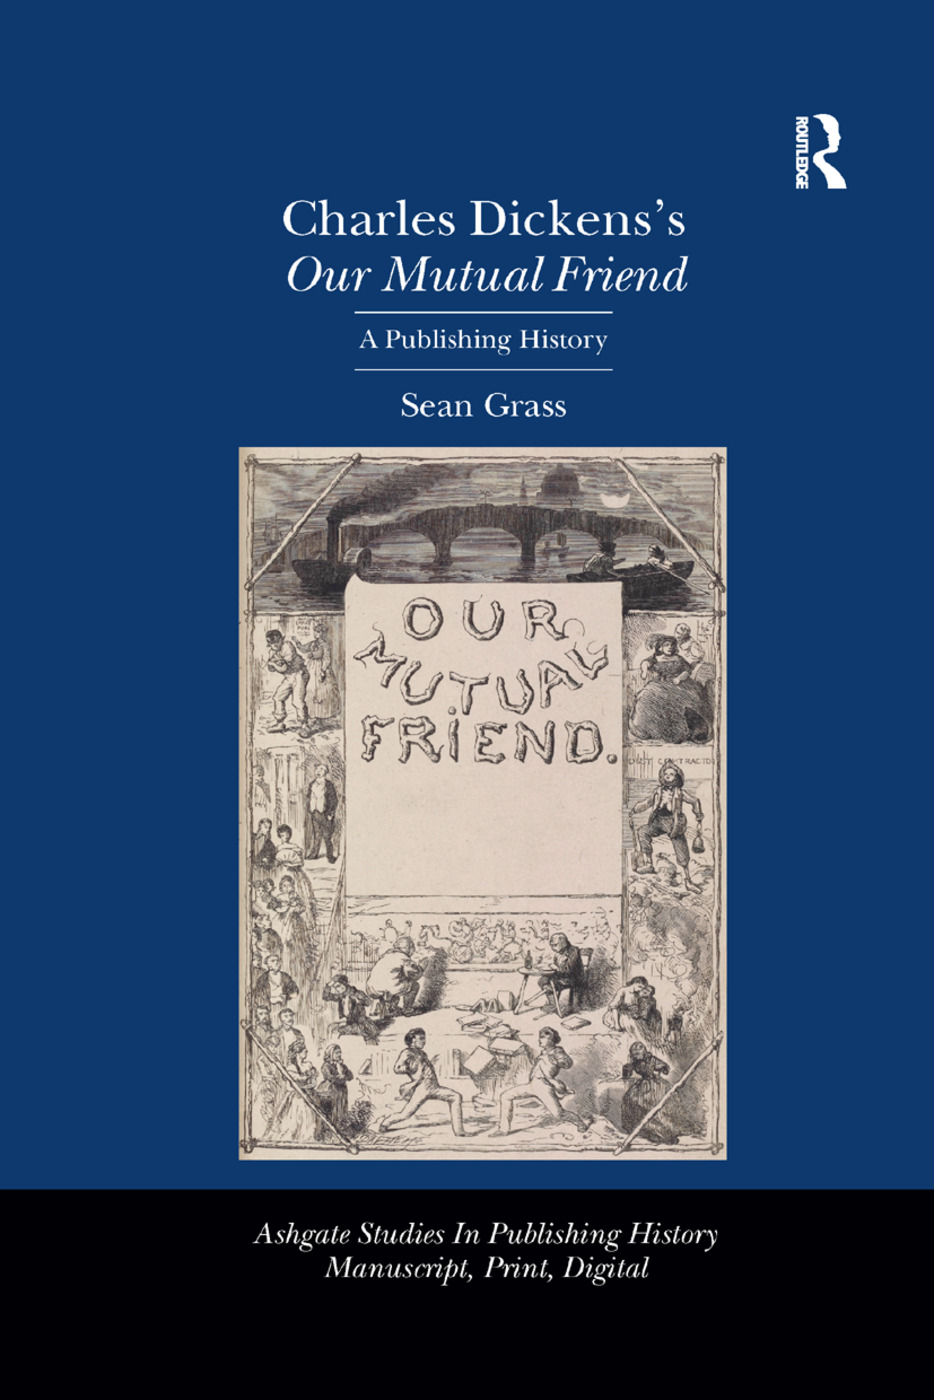 Charles Dickens's Our Mutual Friend: A Publishing History book cover